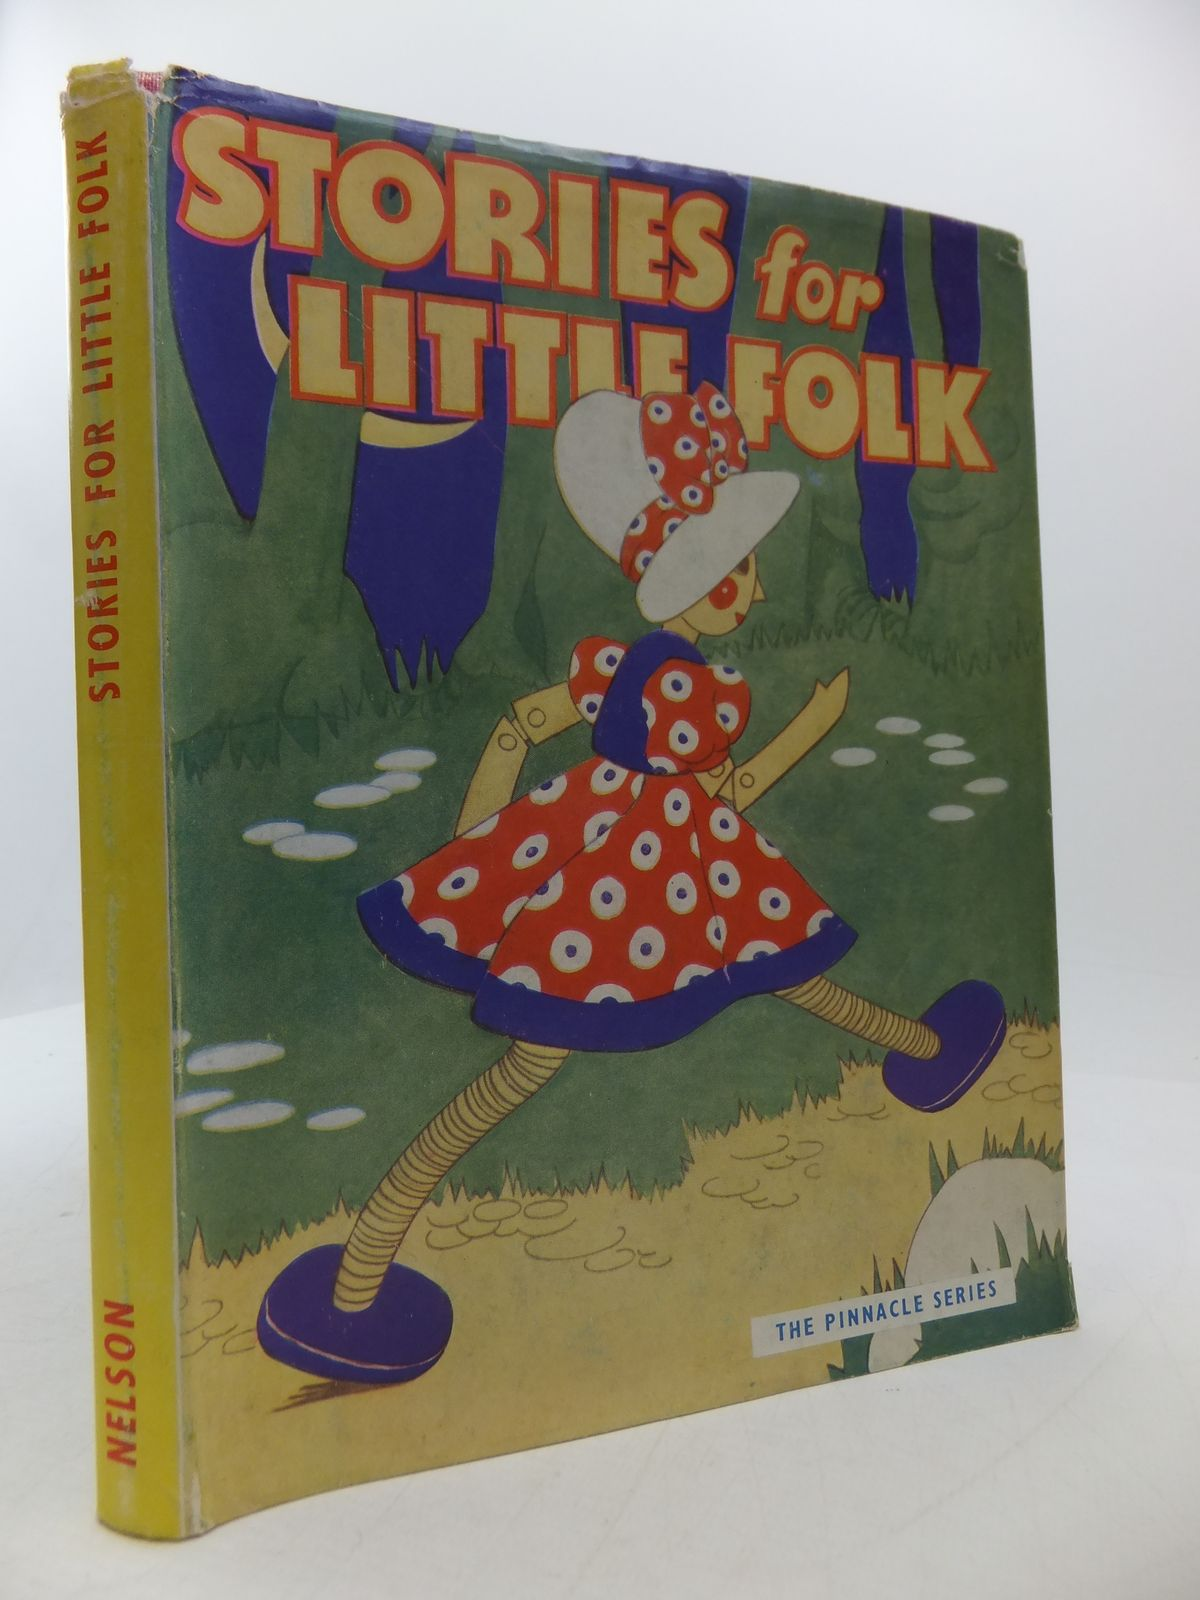 Photo of STORIES FOR LITTLE FOLK written by Chaundler, Christine<br />Russell, Dorothy<br />Herbertson, Agnes Grozier<br />Oldmeadow, Katharine<br />Wynne, May<br />et al, illustrated by Topham,<br />et al., published by Thomas Nelson and Sons Ltd. (STOCK CODE: 1108499)  for sale by Stella & Rose's Books